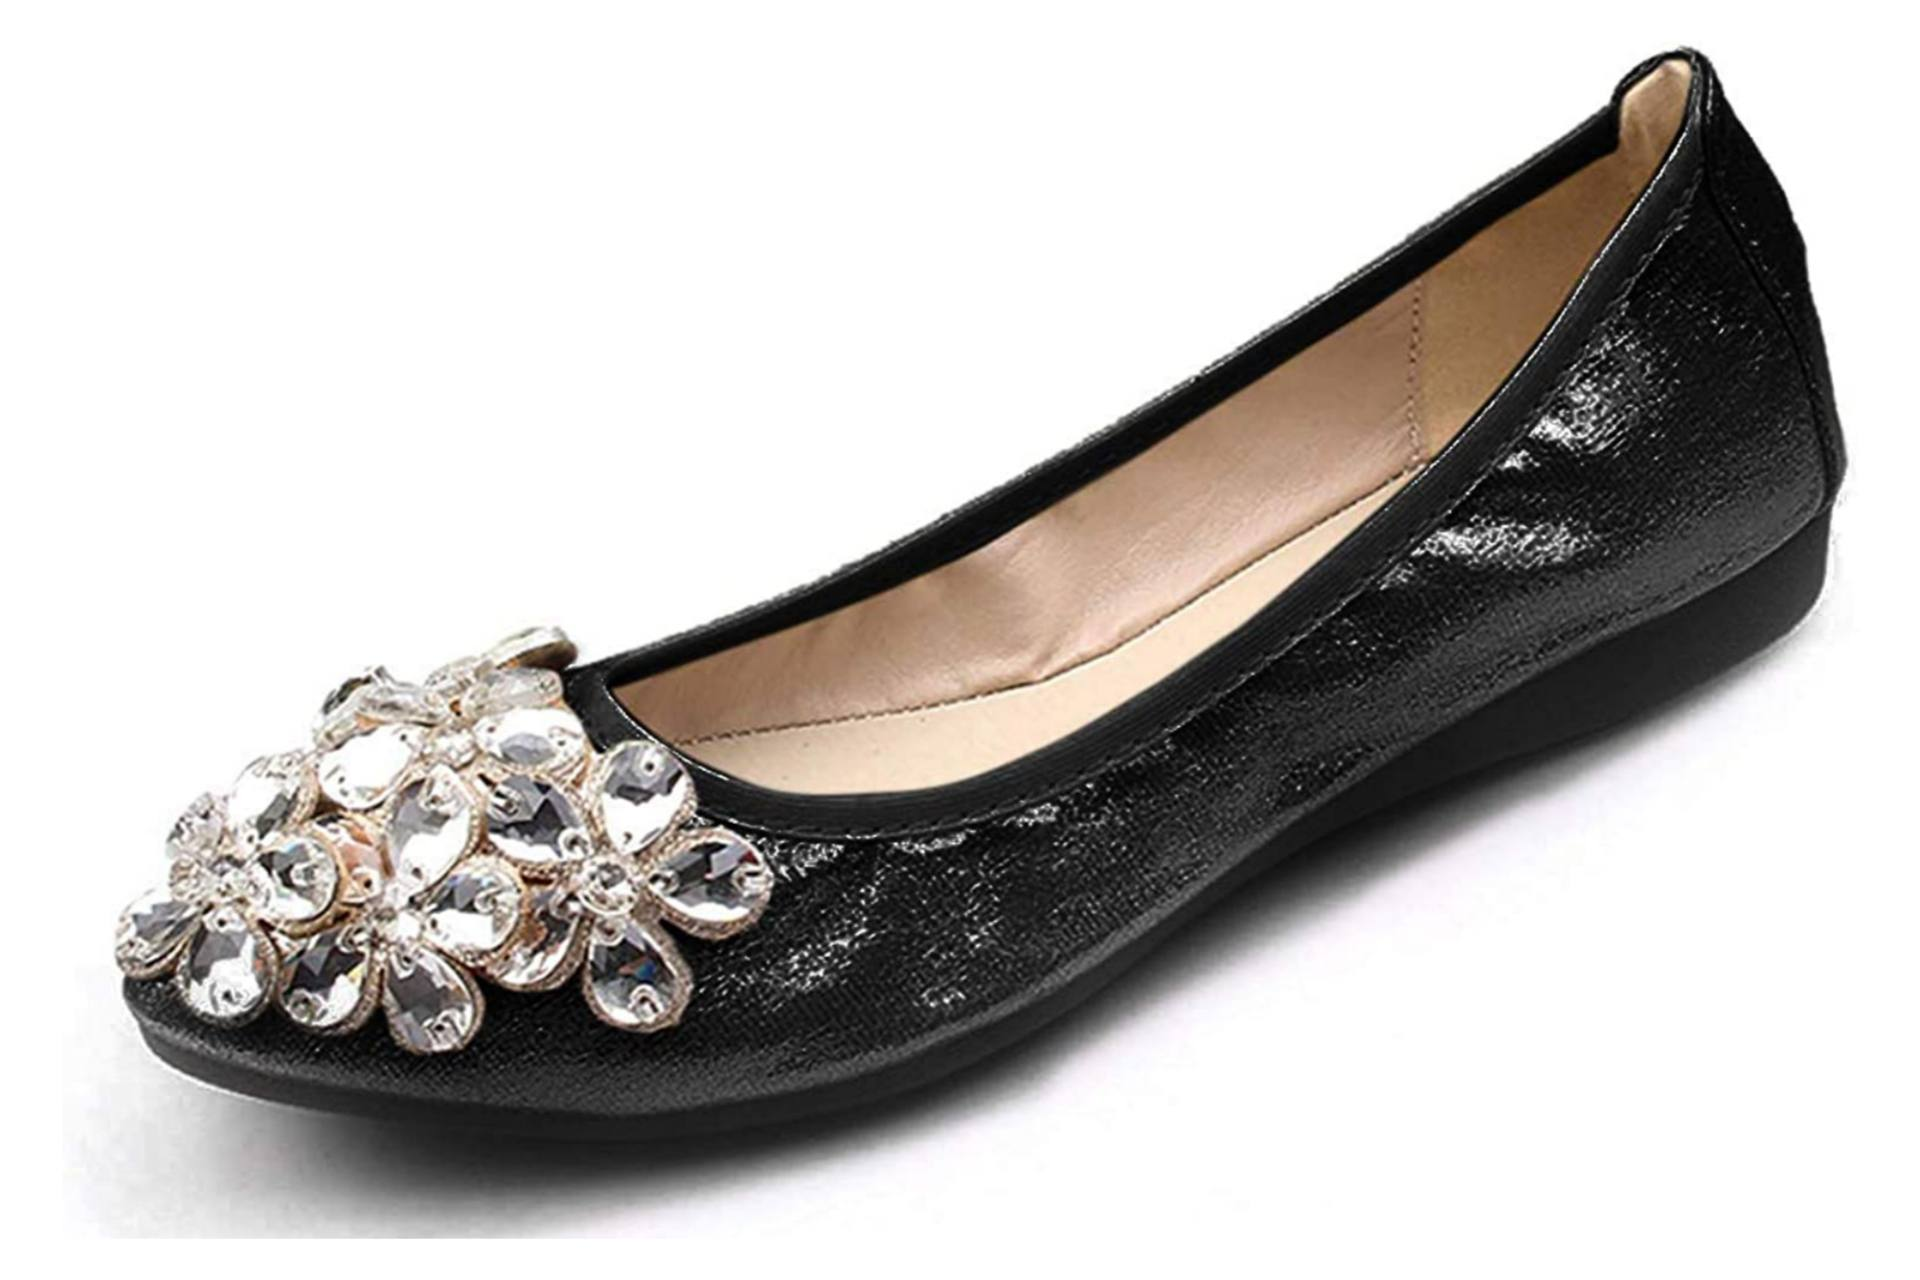 Quality stylish shoes for women